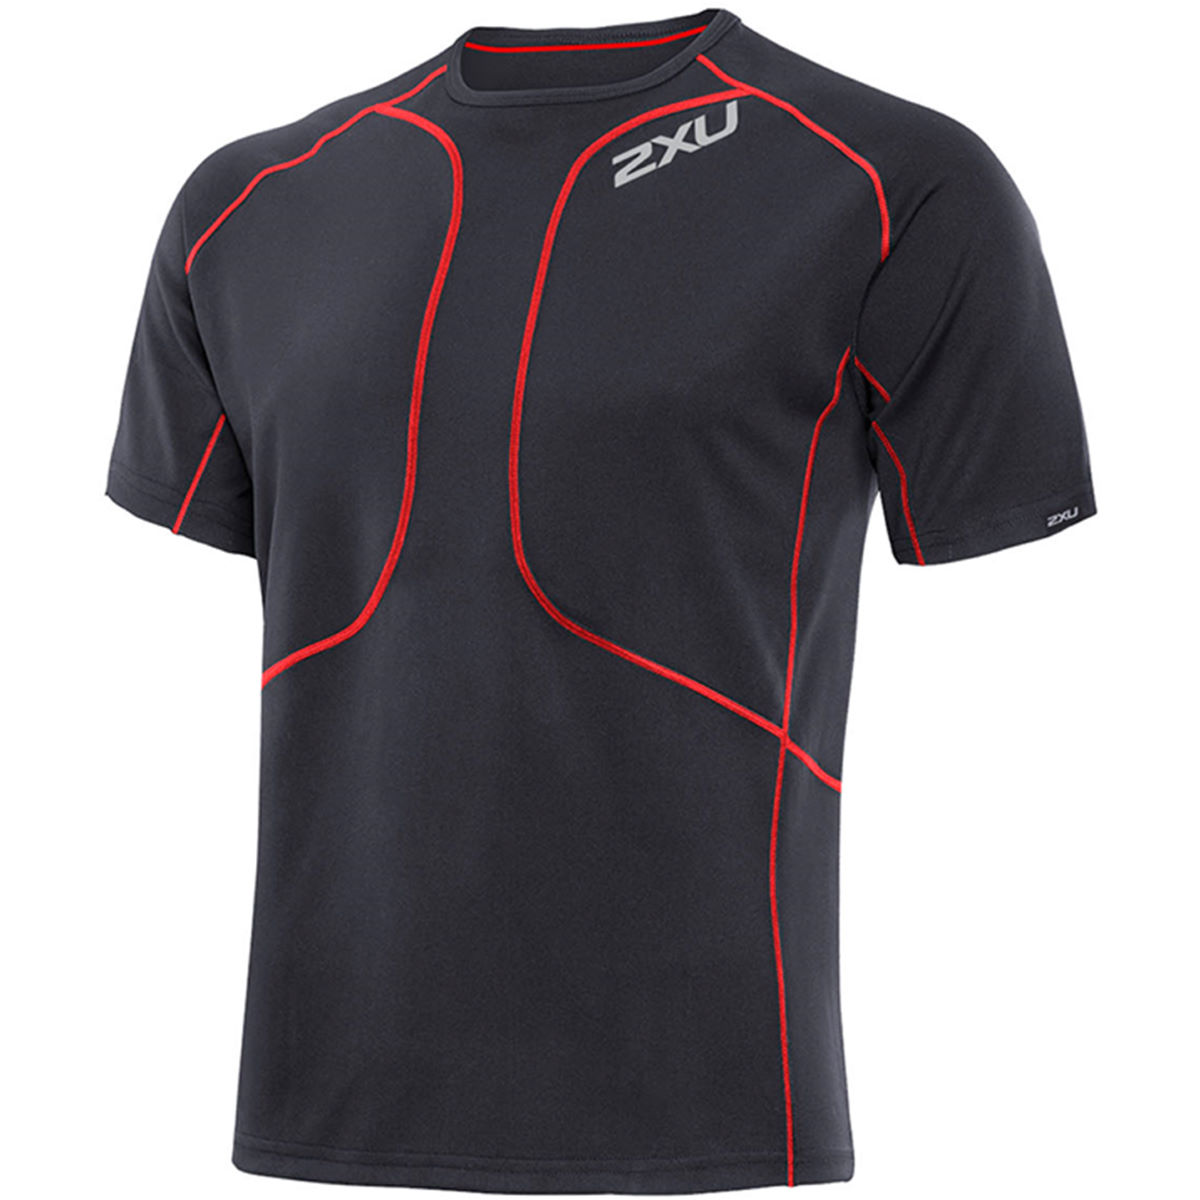 2XU Comp Short Sleeve Run Top - AW13